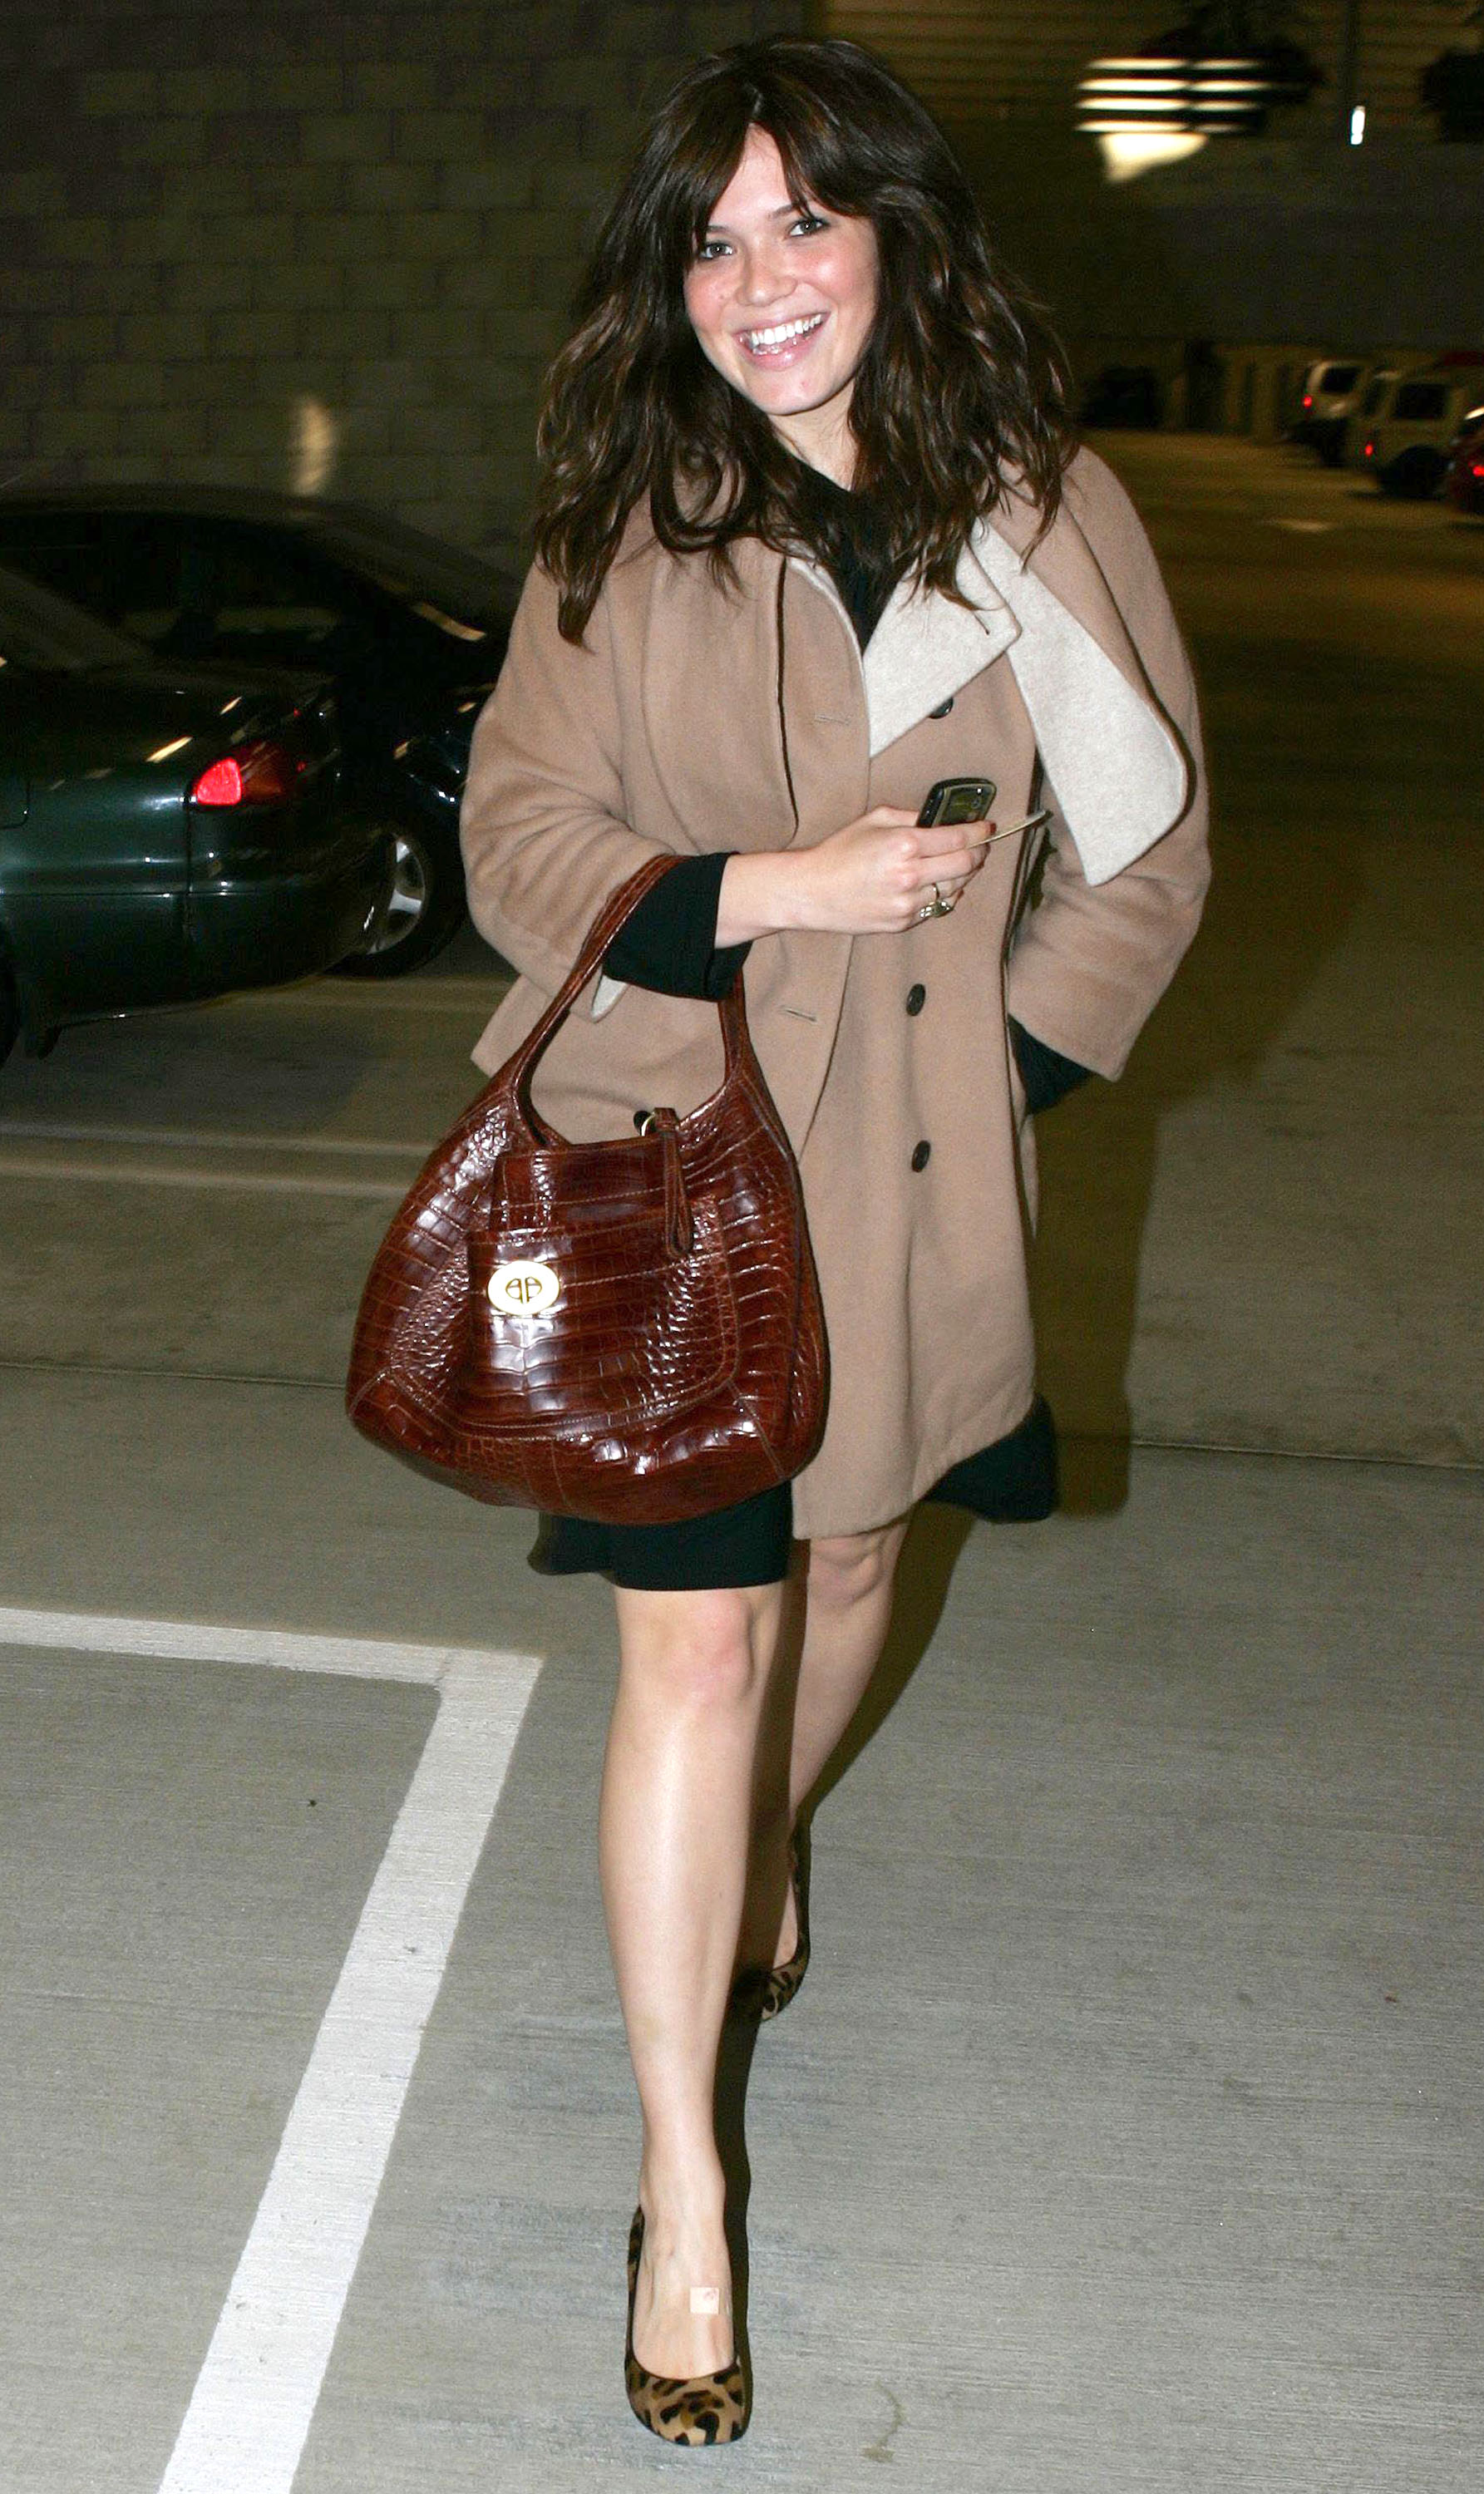 67684_celeb-city.eu_Mandy_Moore_out_and_about_in_West_Hollywood_10.12.2007_16_122_360lo.jpg